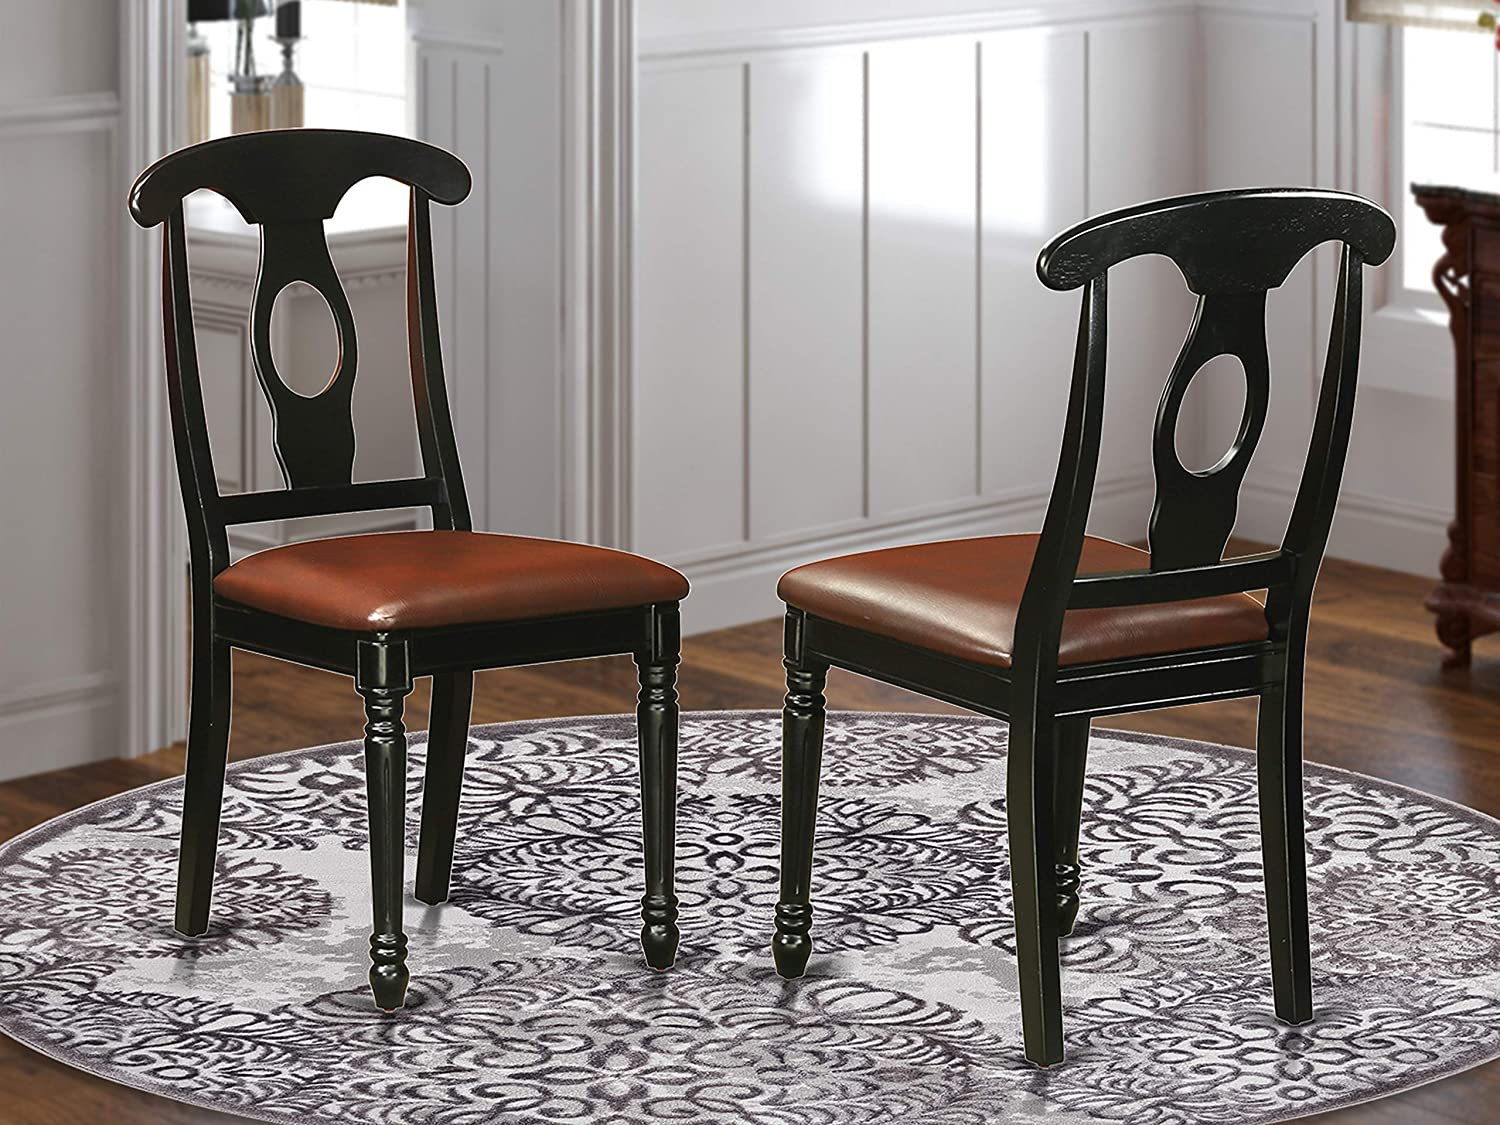 Kenley Nappoleon-Styled Dining room Chair with faux leather upholstered Seat